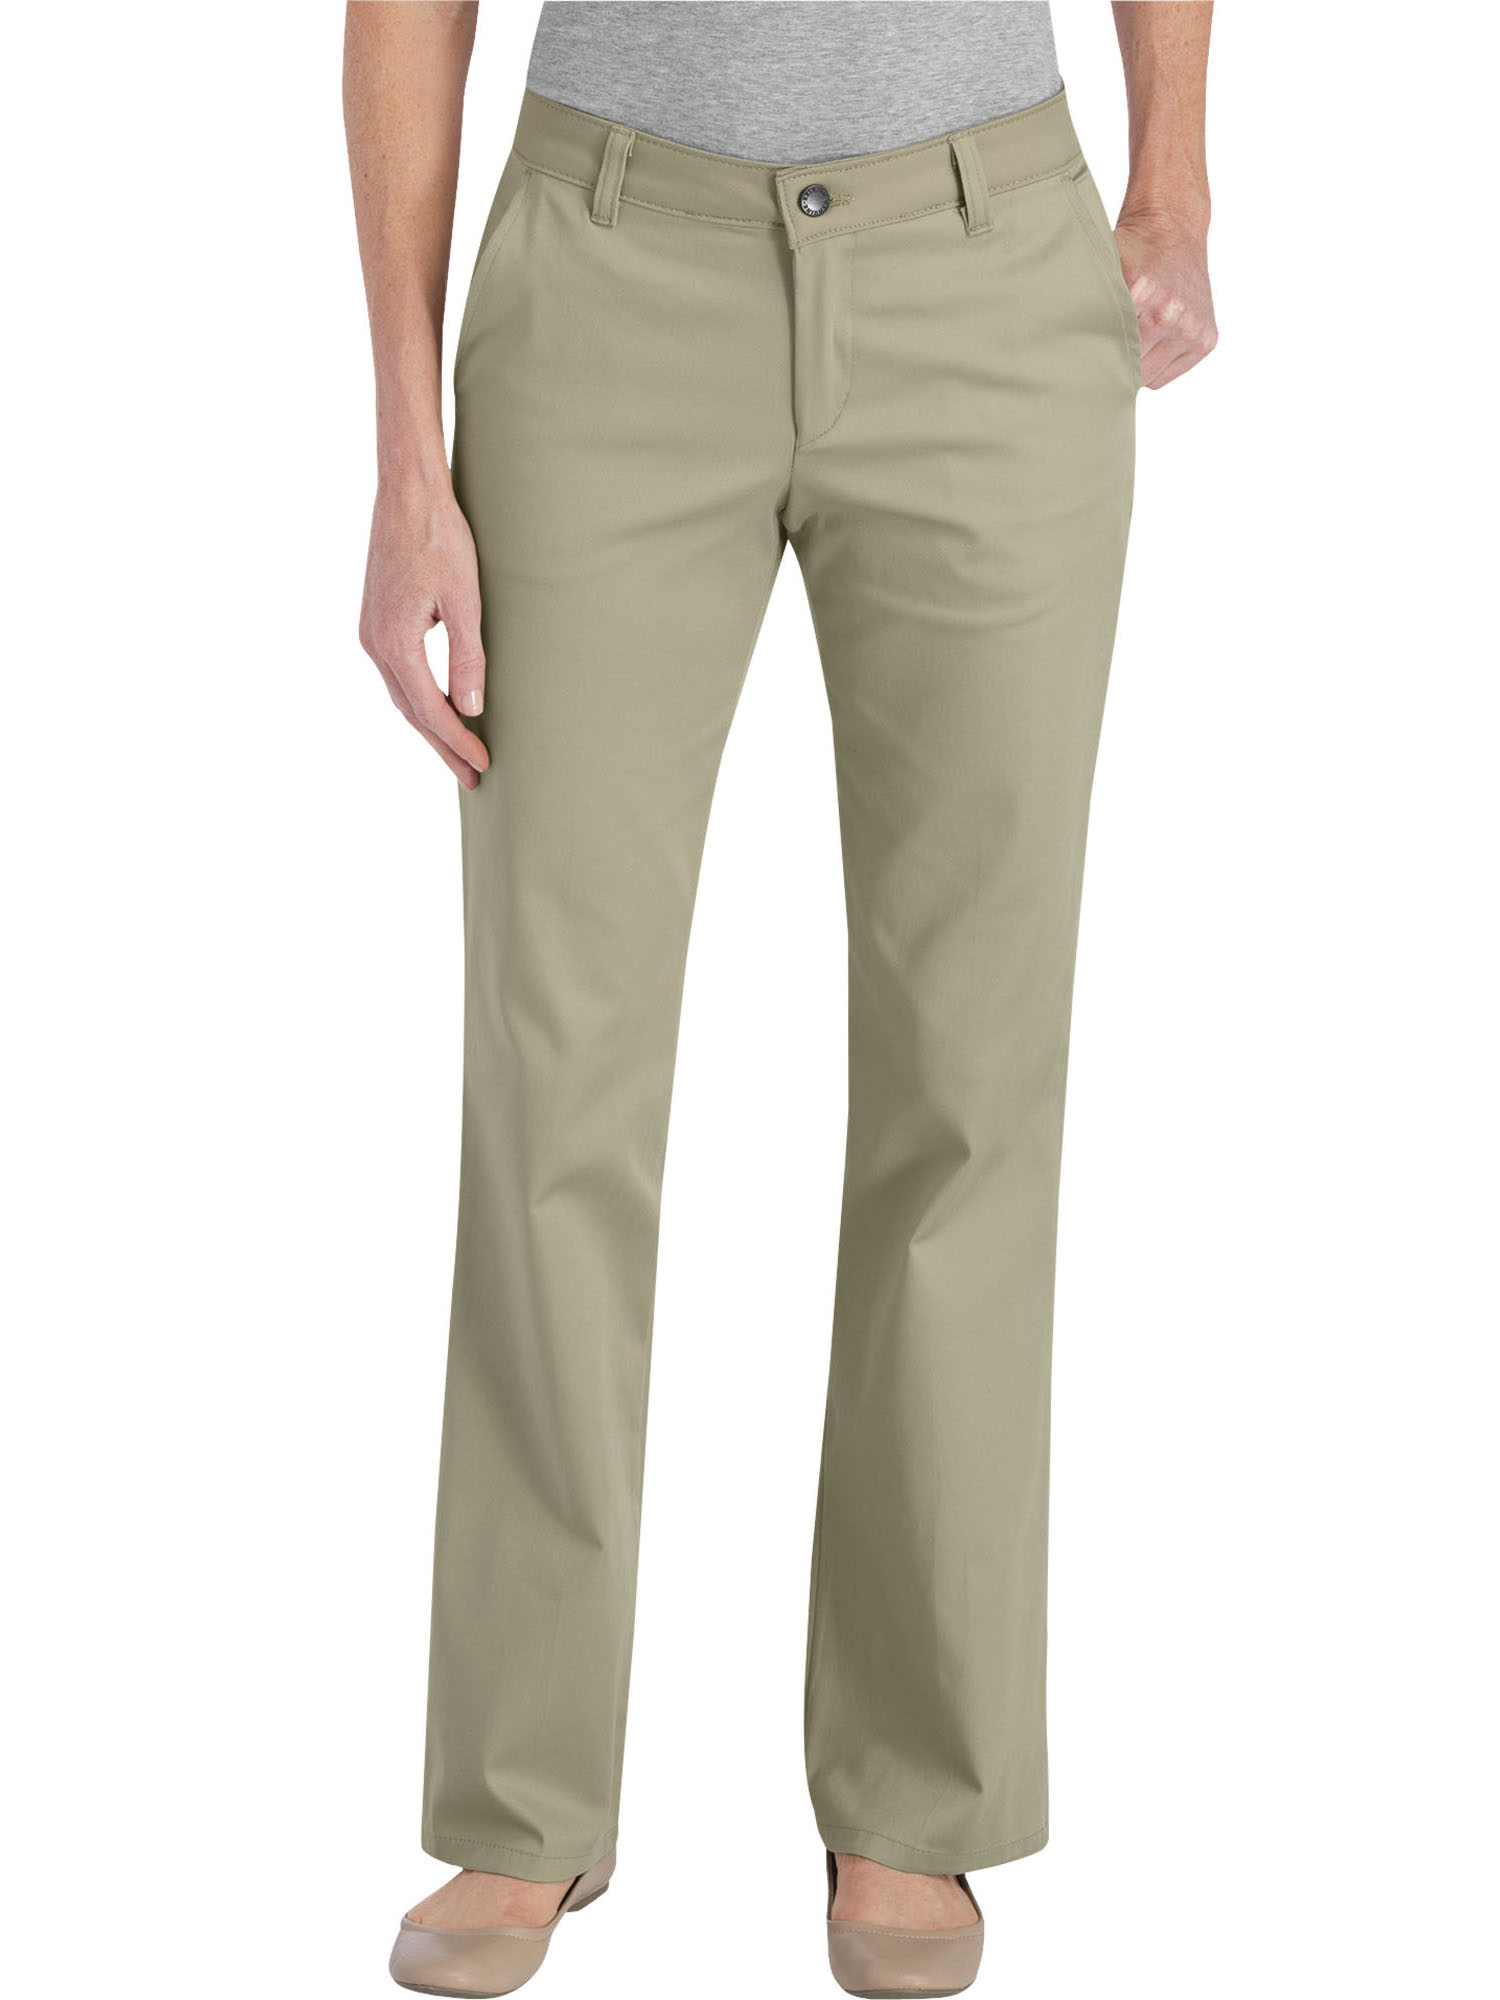 a8c93113 Good Quality Womens Dress Pants